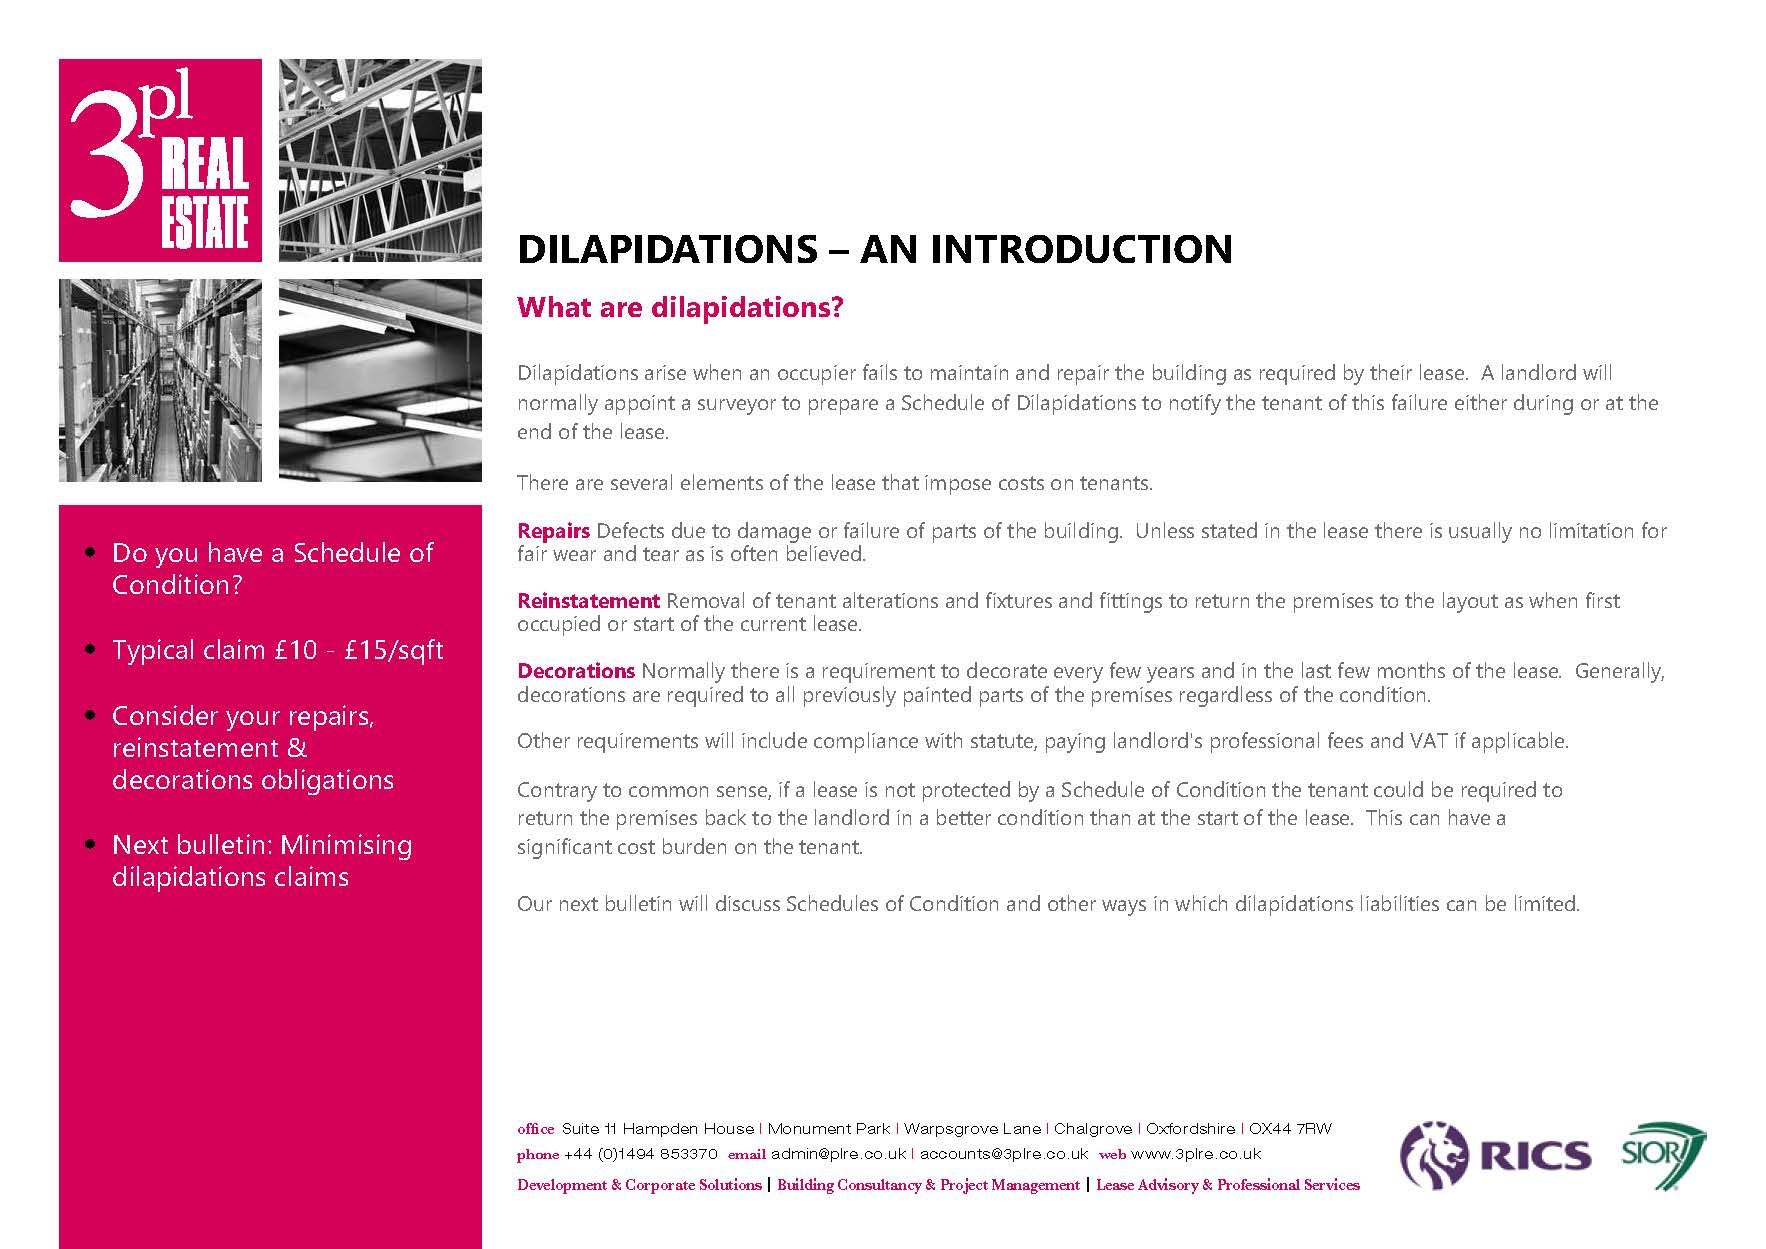 dilaps, dilapidations, schedules of condition,